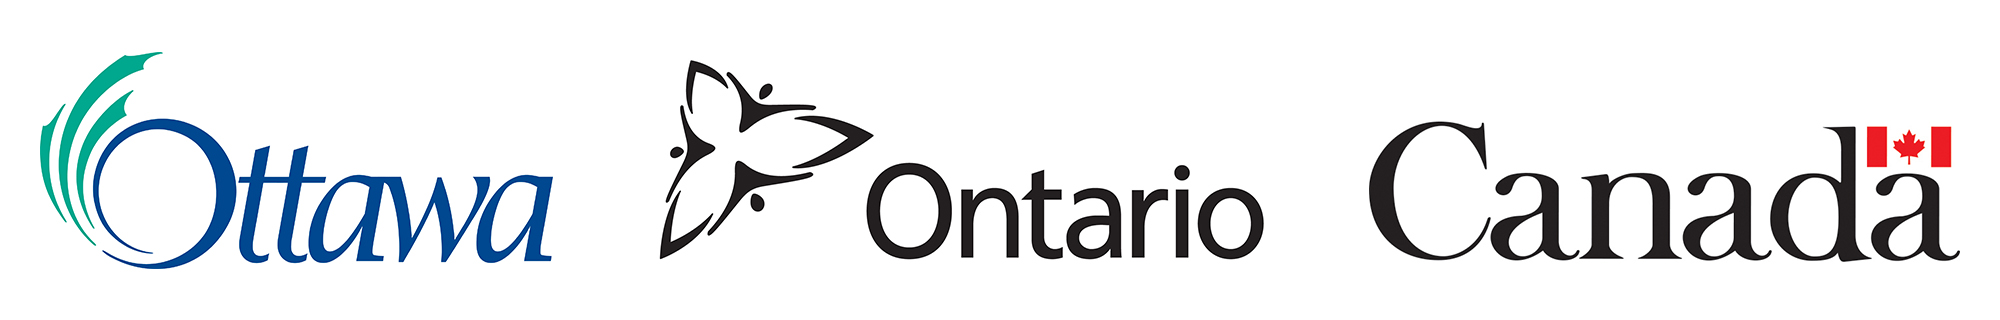 City of Ottawa, Government of Ontario, Government of Canada